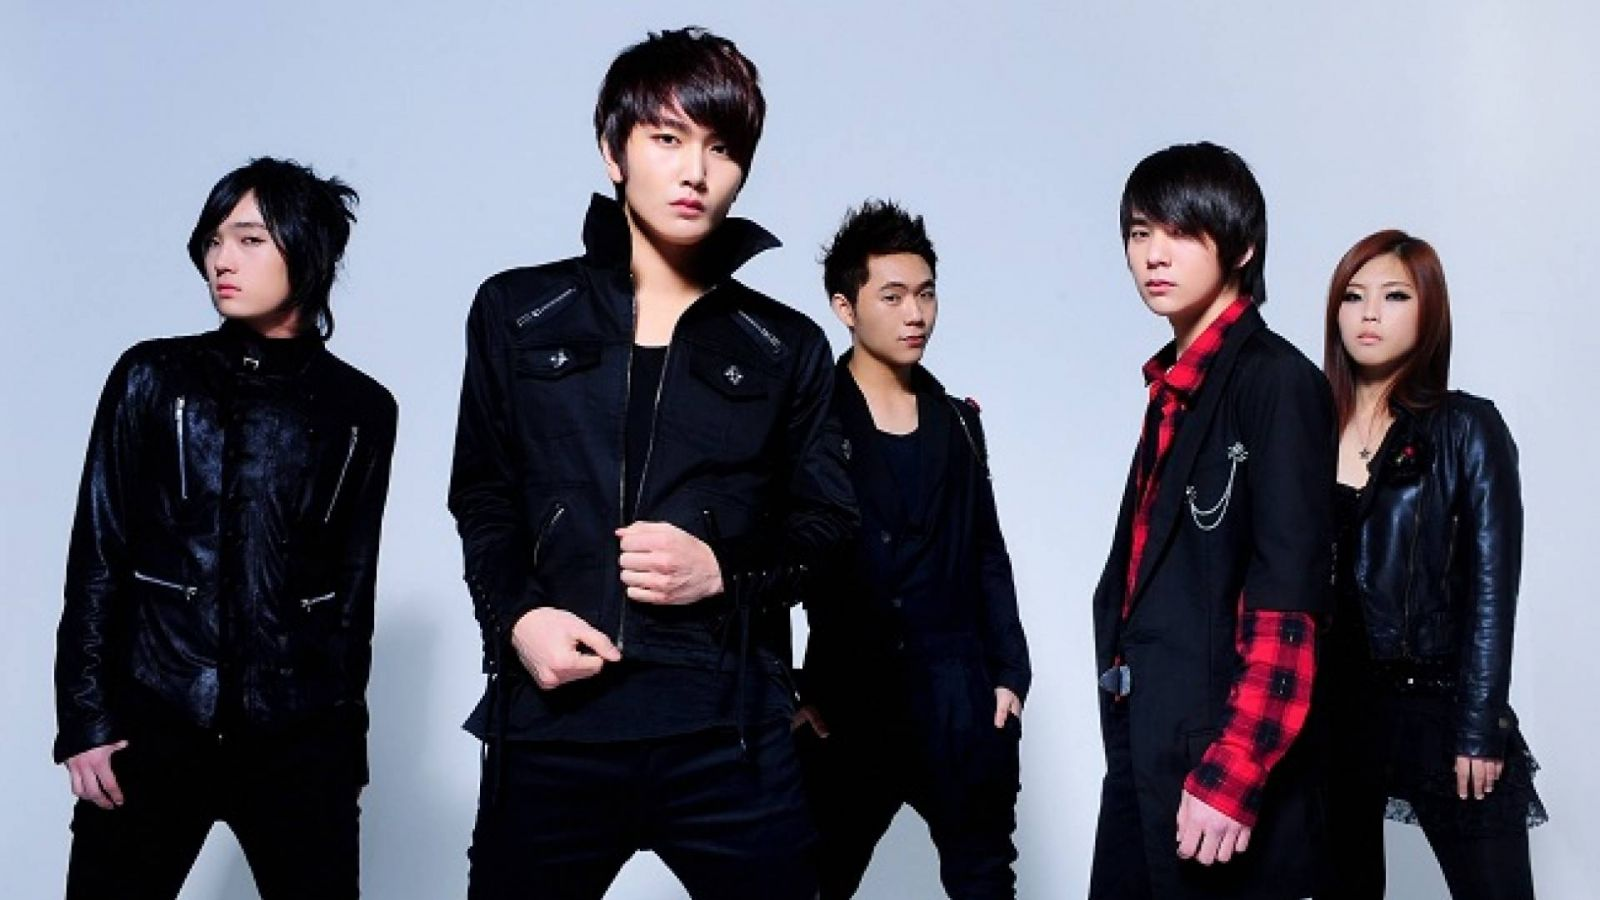 Interview avec le groupe de rock AXIZ © AXIZ